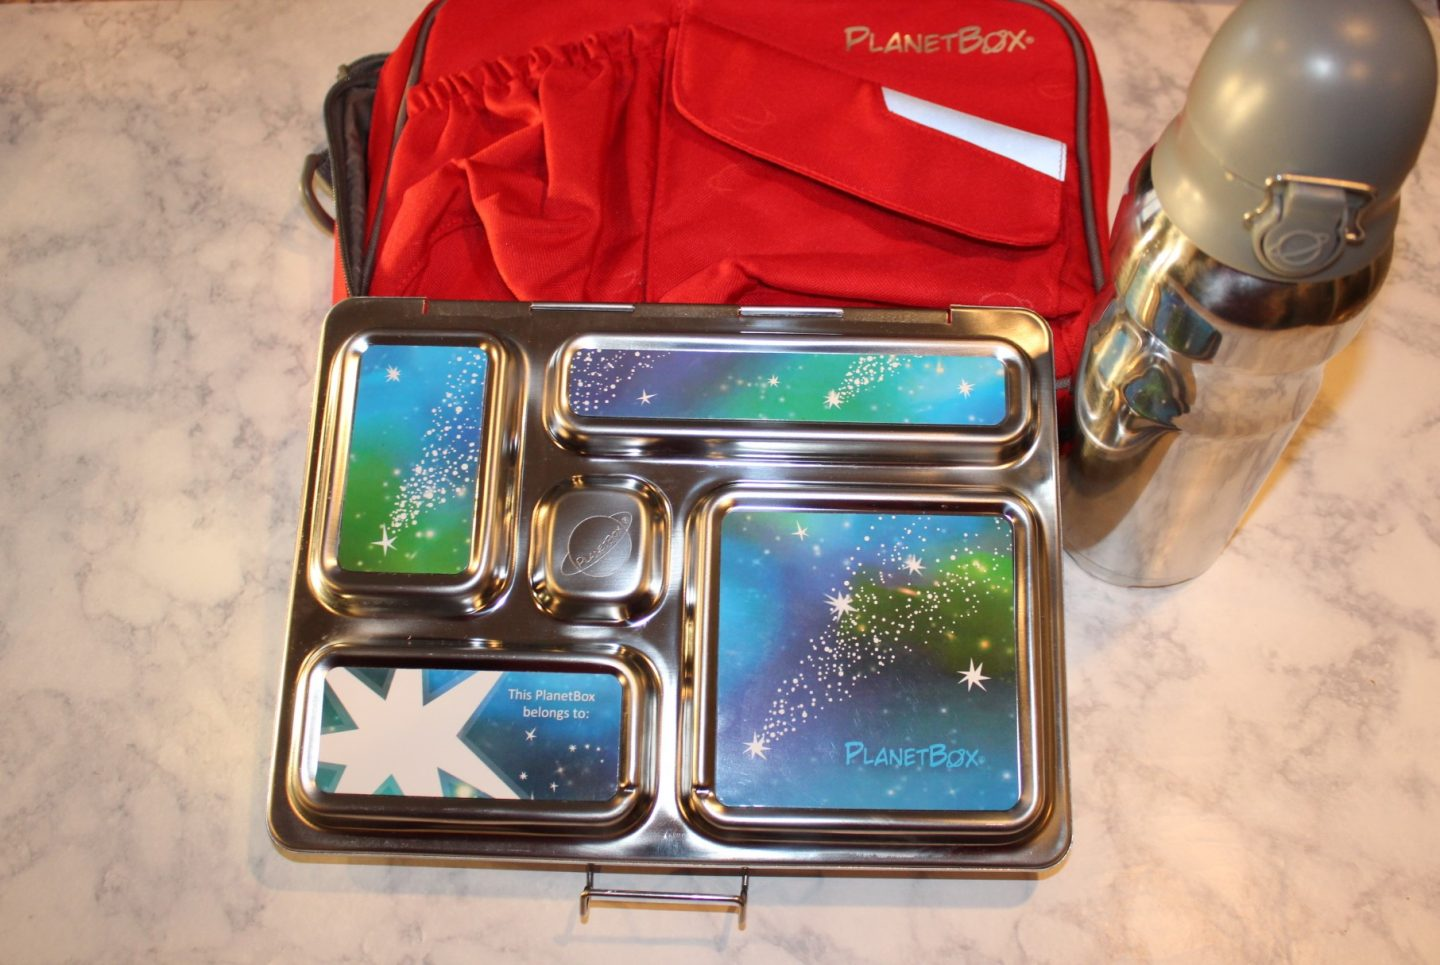 PLanetbox portion control containers